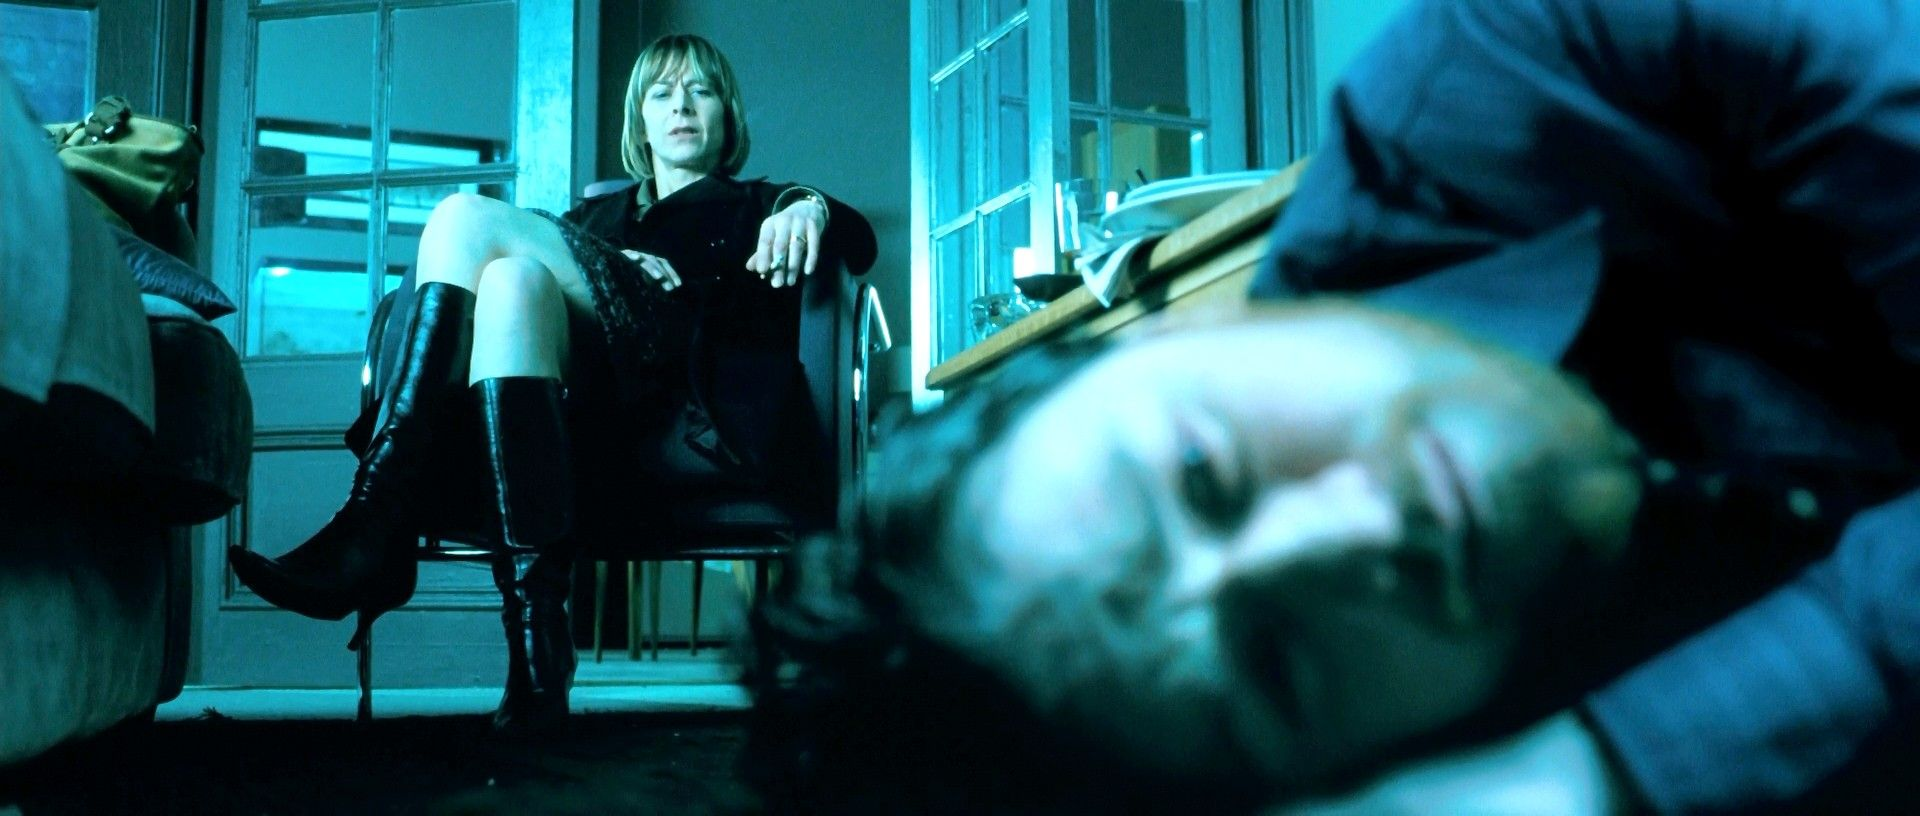 Filth (2013) directed by Jon S. Bair with Kate Dickie